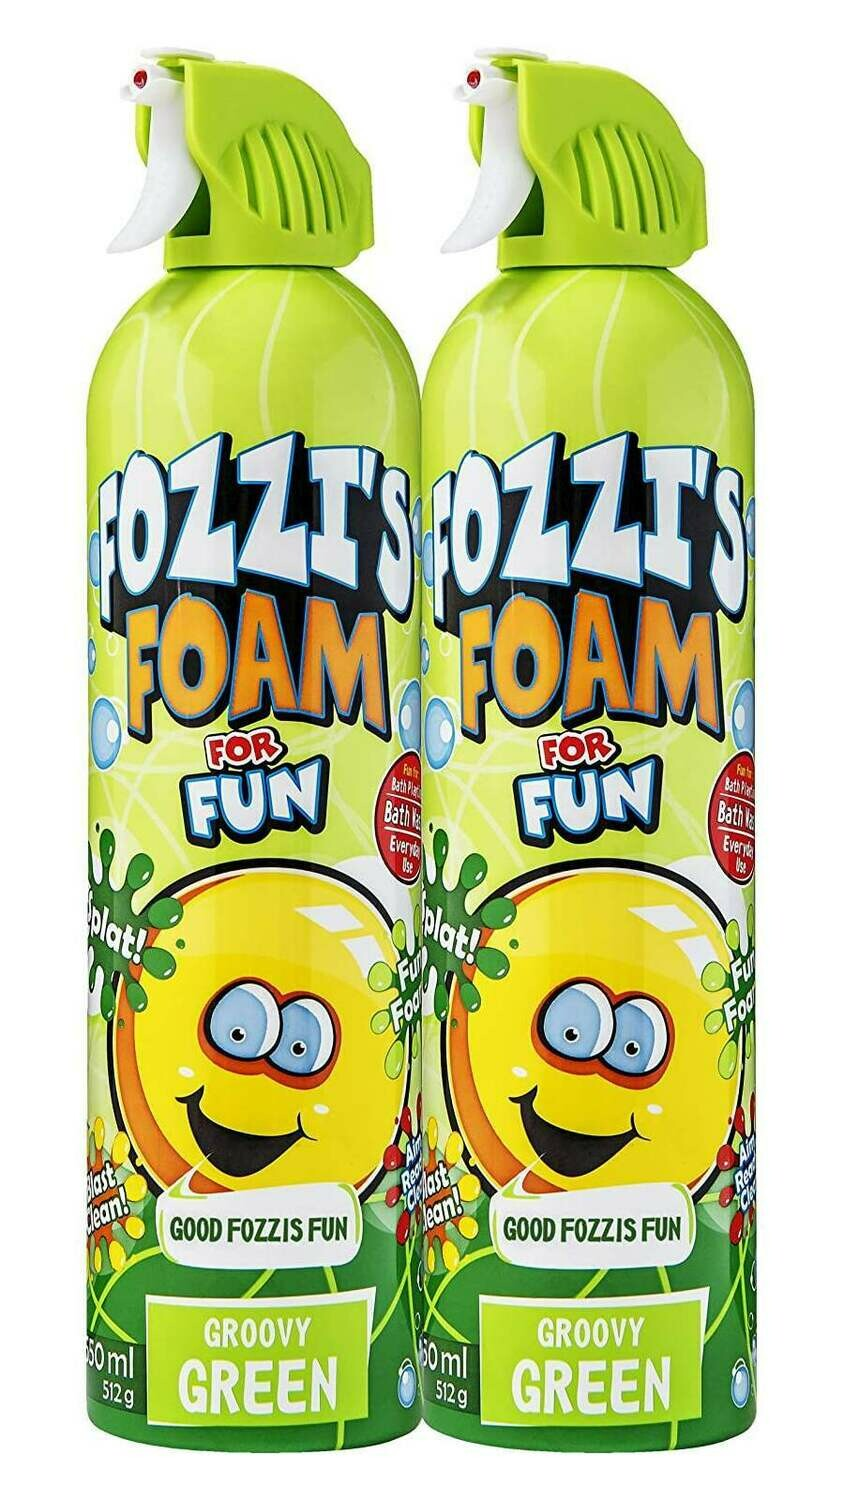 FOZZI's Foam 2 x Large Groovy Green, Good Fozzi Fun, 2 x 18.06 oz (Pack of 2) and Free Shipping